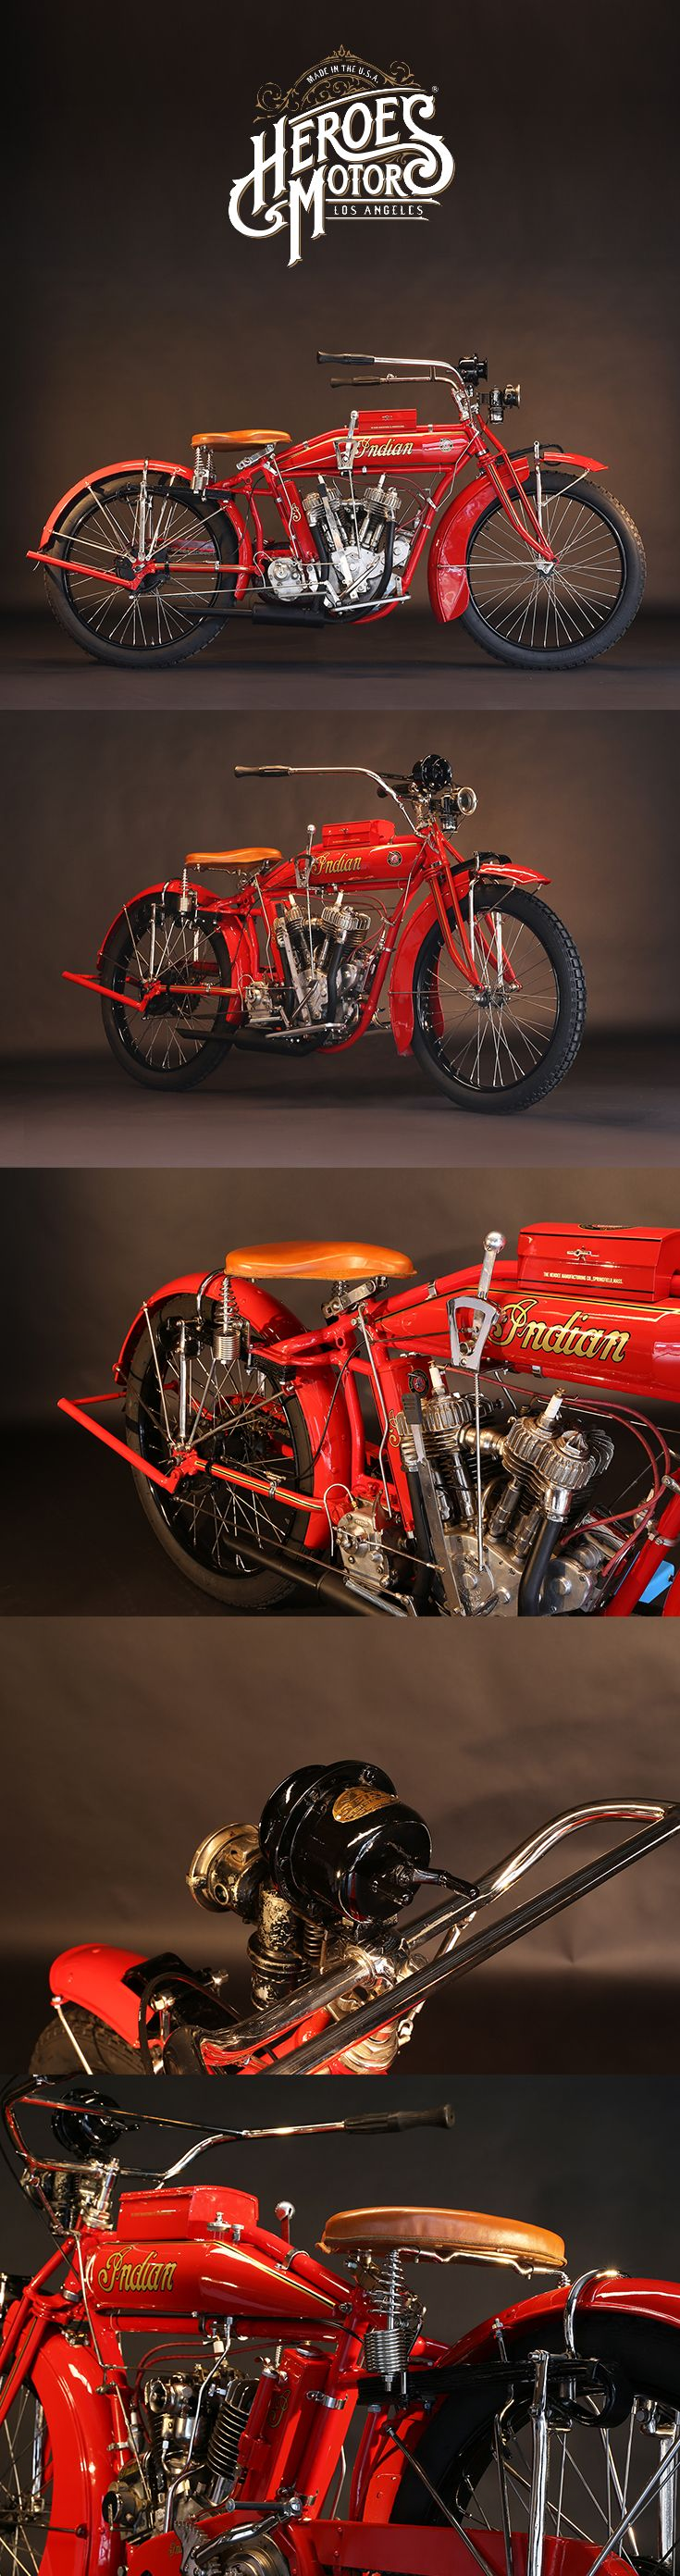 1916 INDIAN 1000cc POWER PLUS